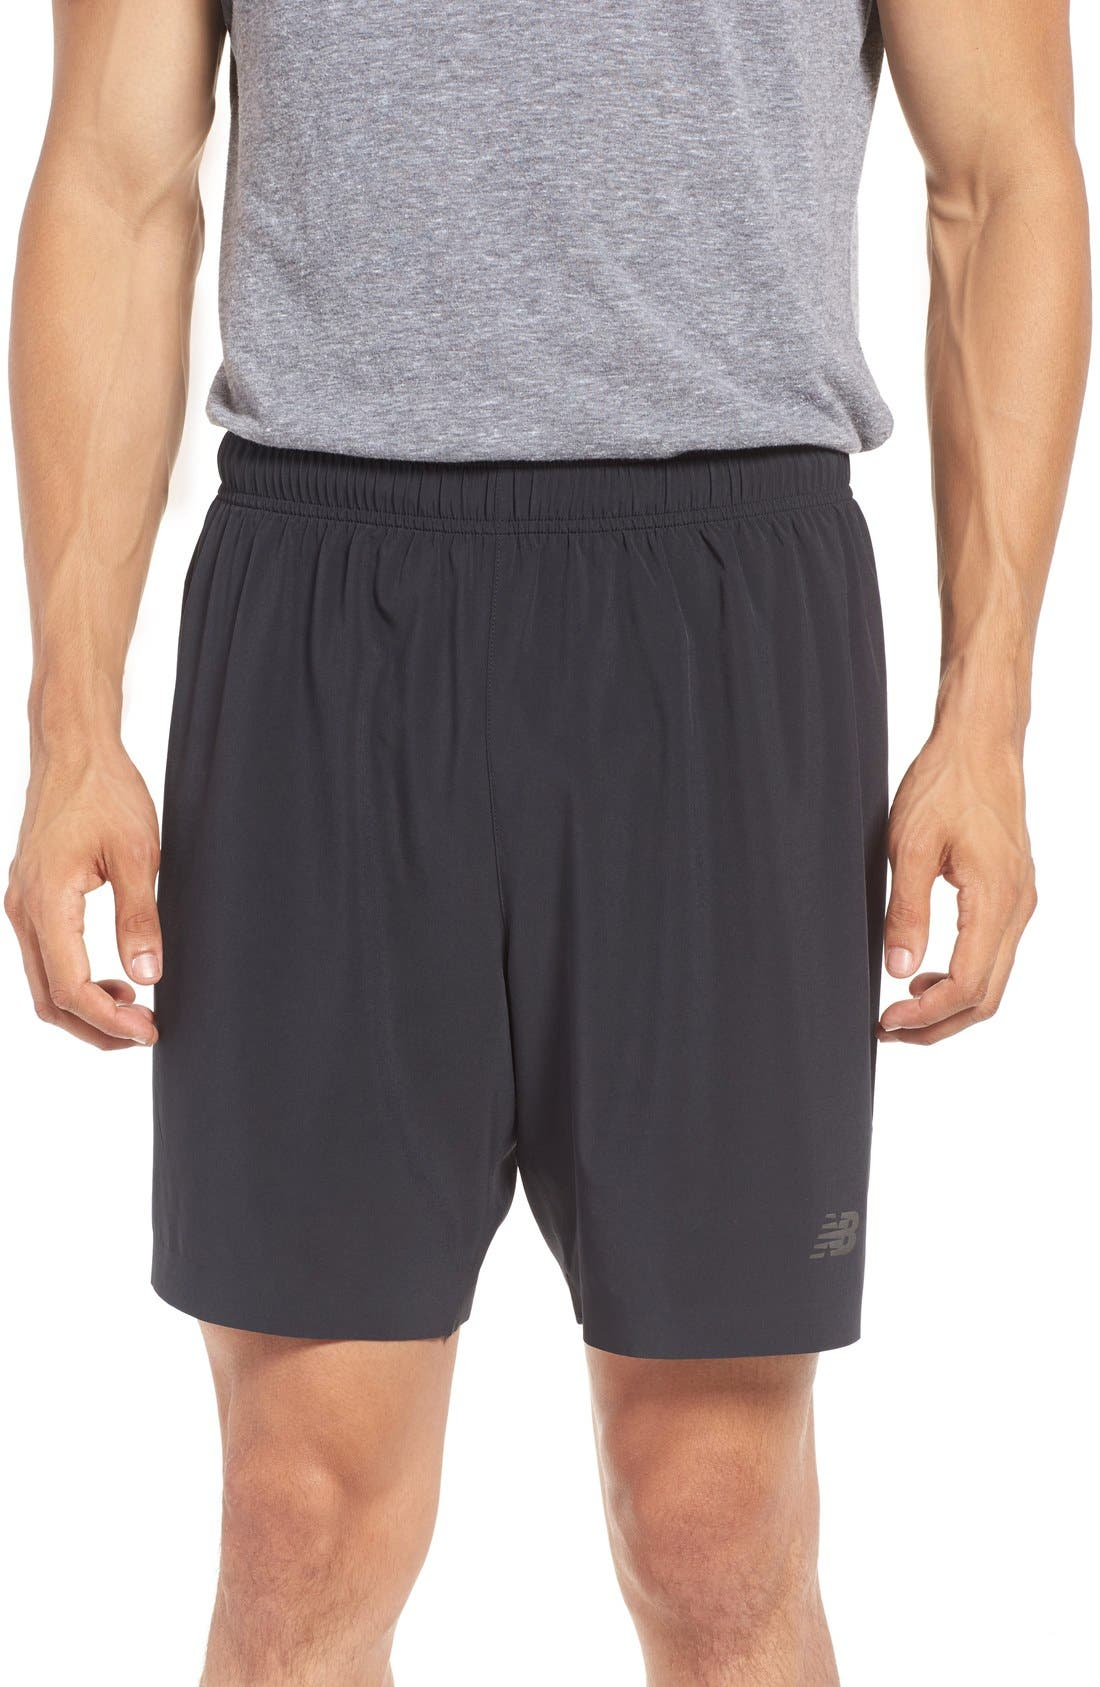 New Balance 'Shift' Athletic Fit Training Shorts